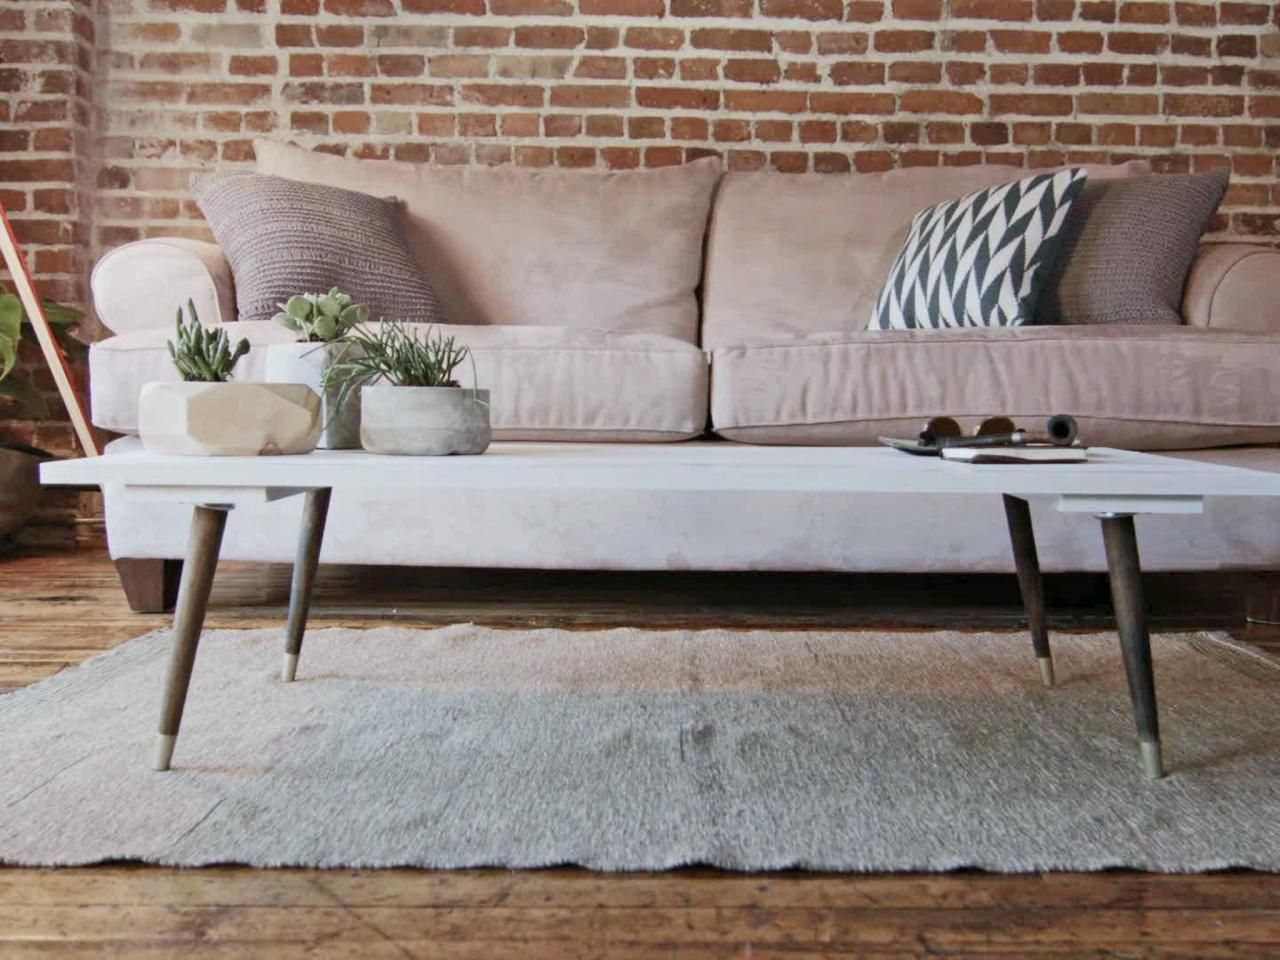 How To Make A Midcentury Modern Coffee Table Mid Century Modern Coffee Table Coffee Table Mid Century Coffee Table